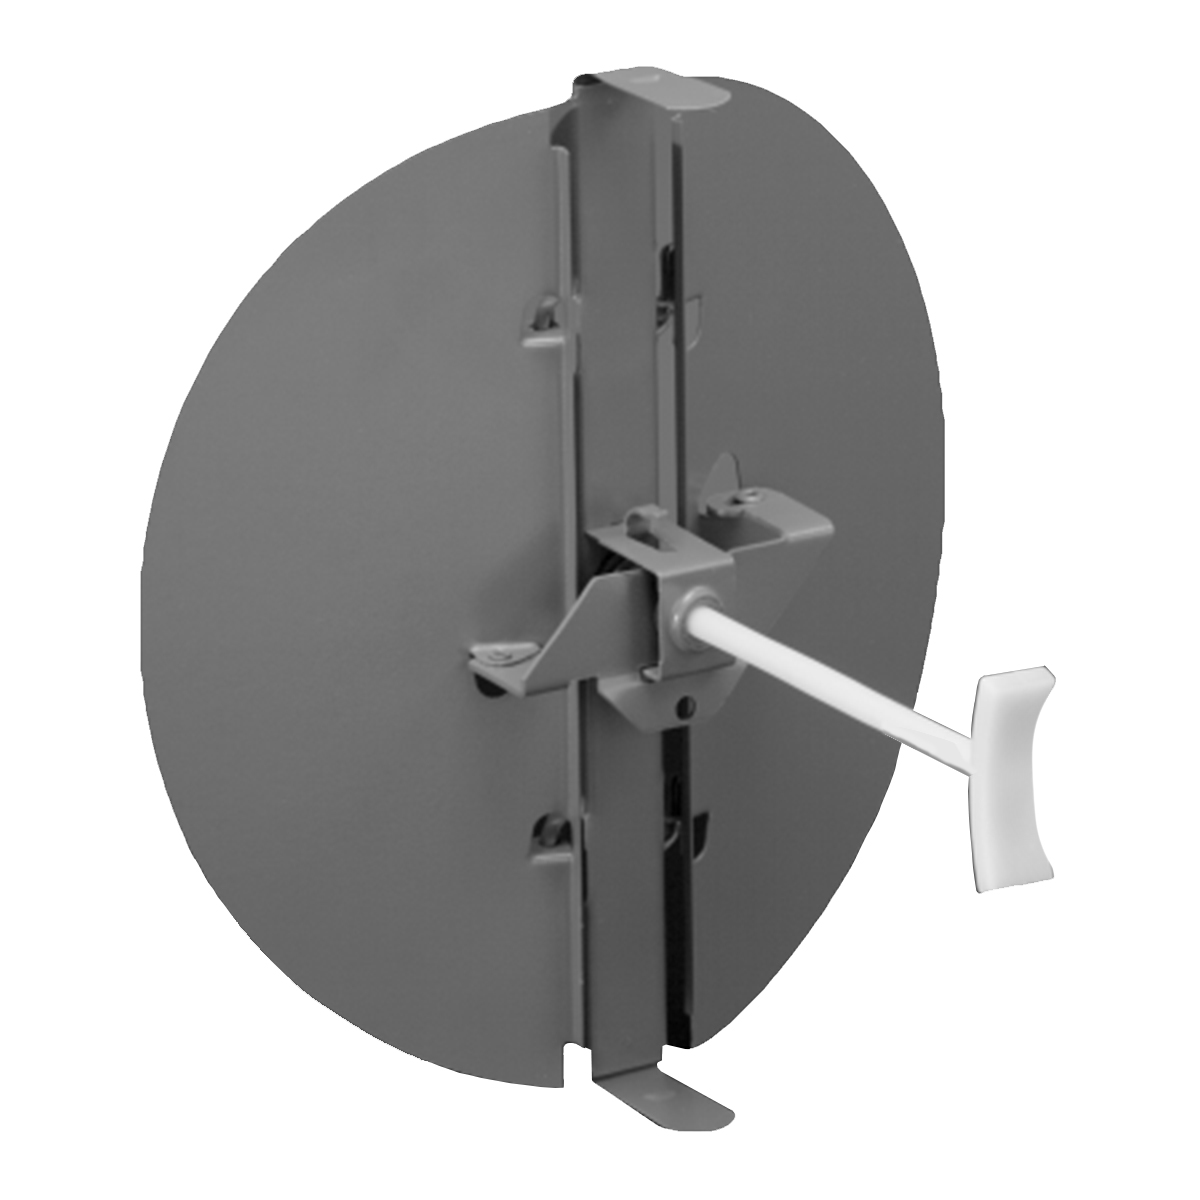 Linear Diffuser With Damper : R butterfly damper lima